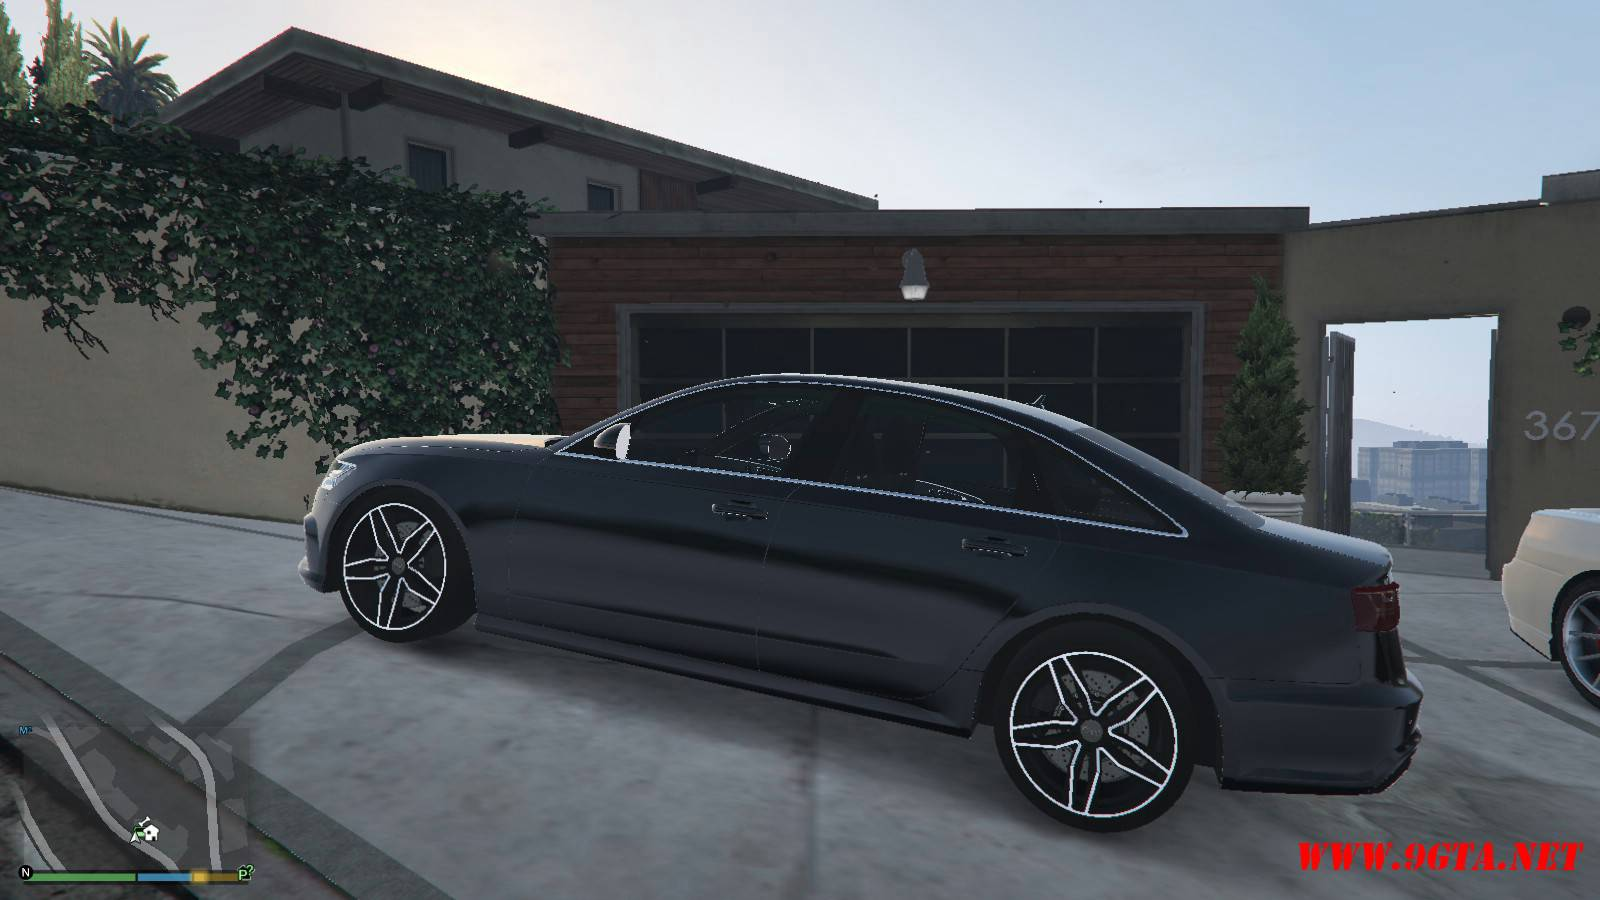 Audi A6 Mod For GTA5 (18)